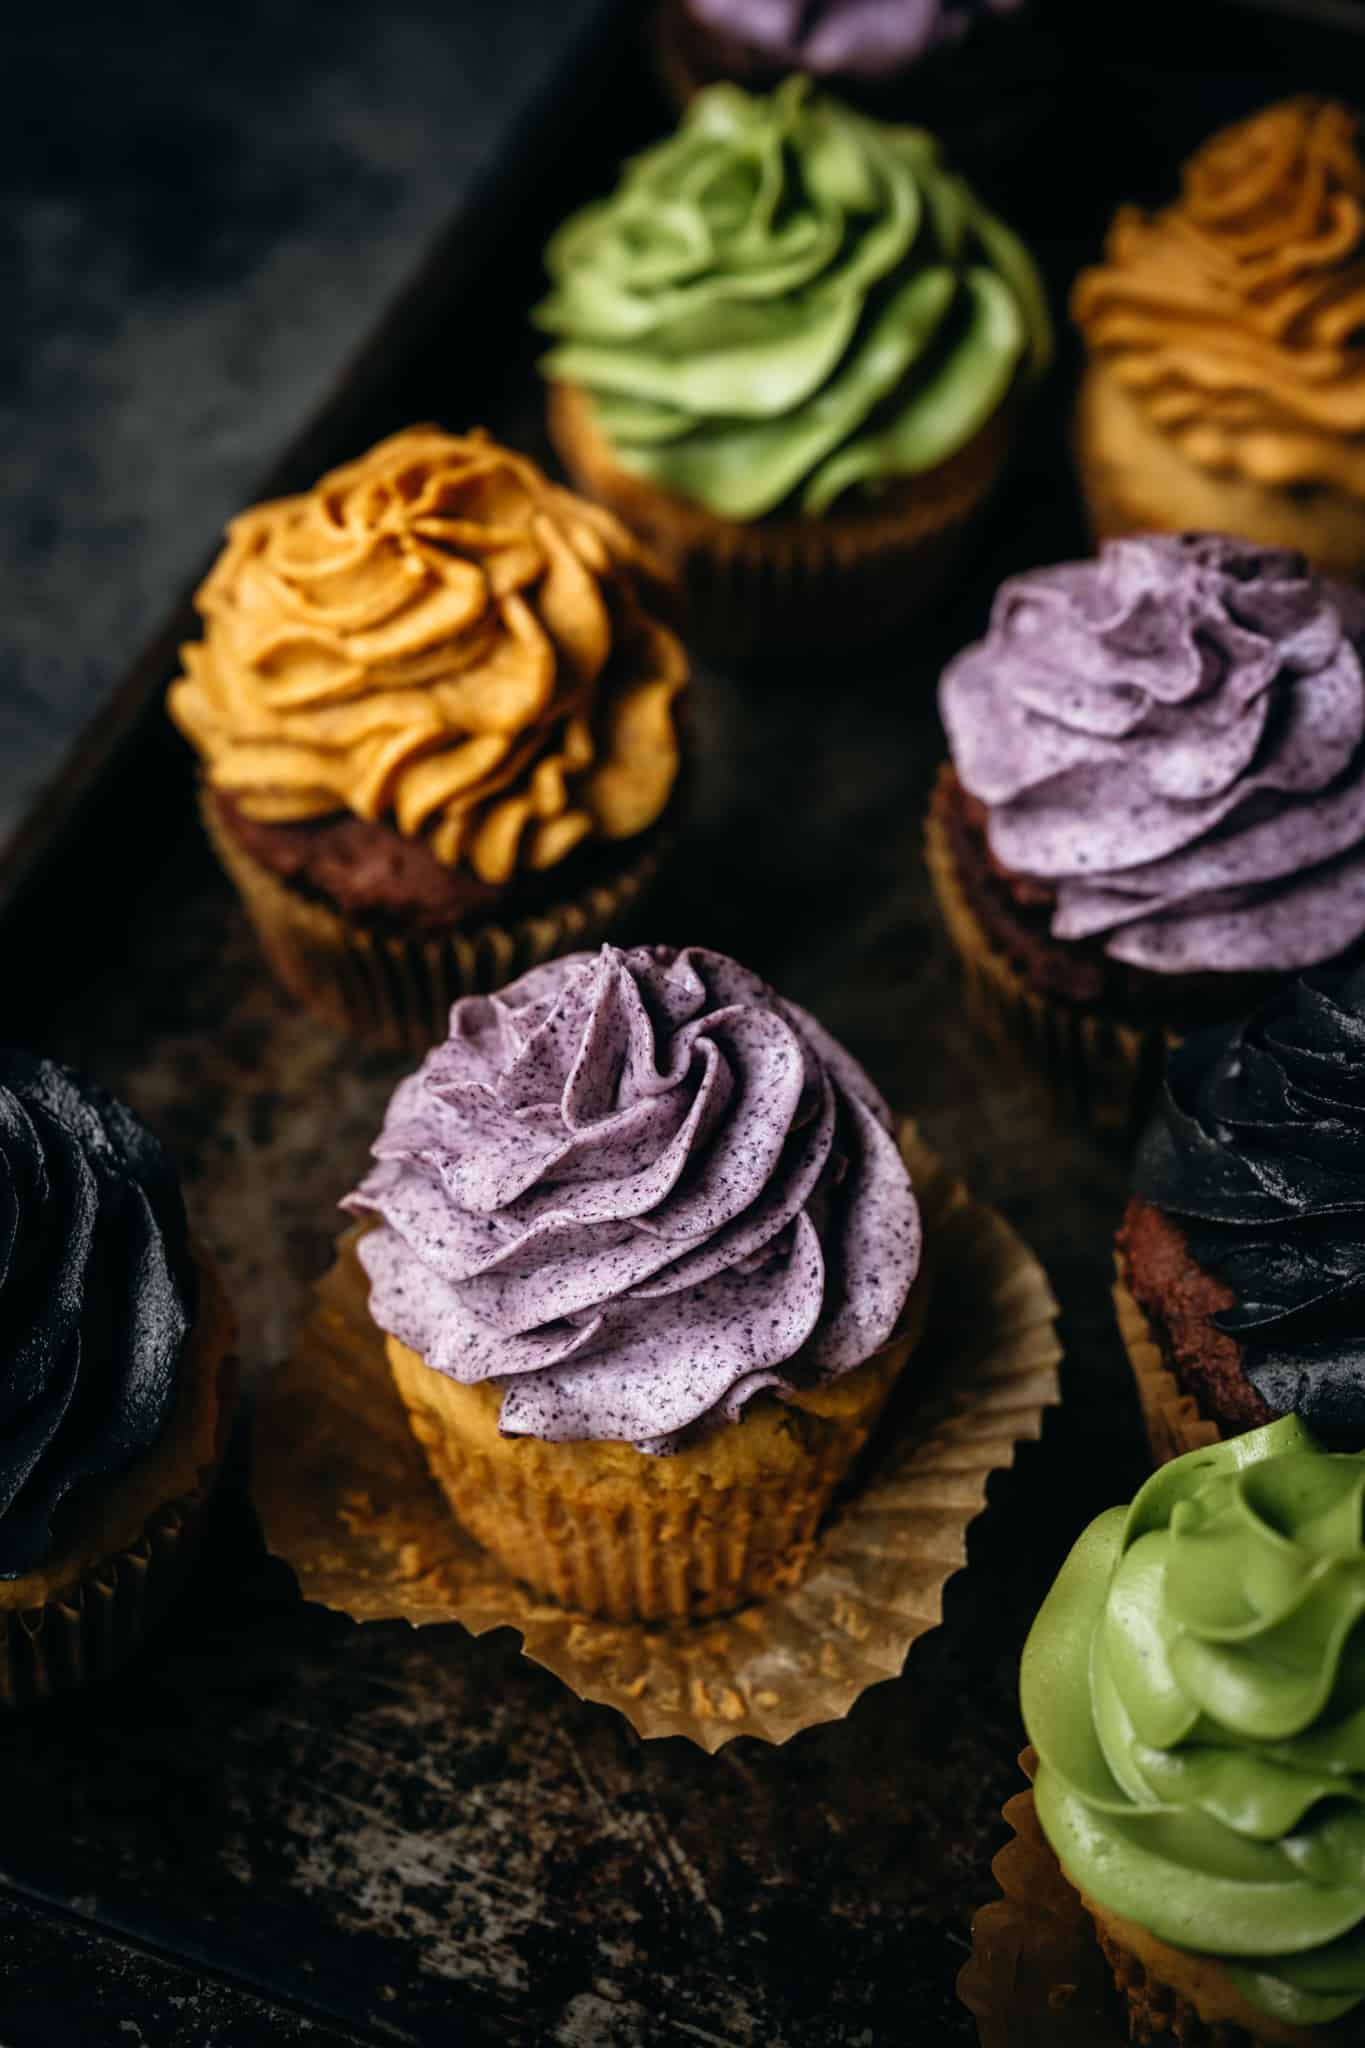 45 degree overhead of vegan cupcakes with naturally dyed buttercream frosting in purple, yellow and green